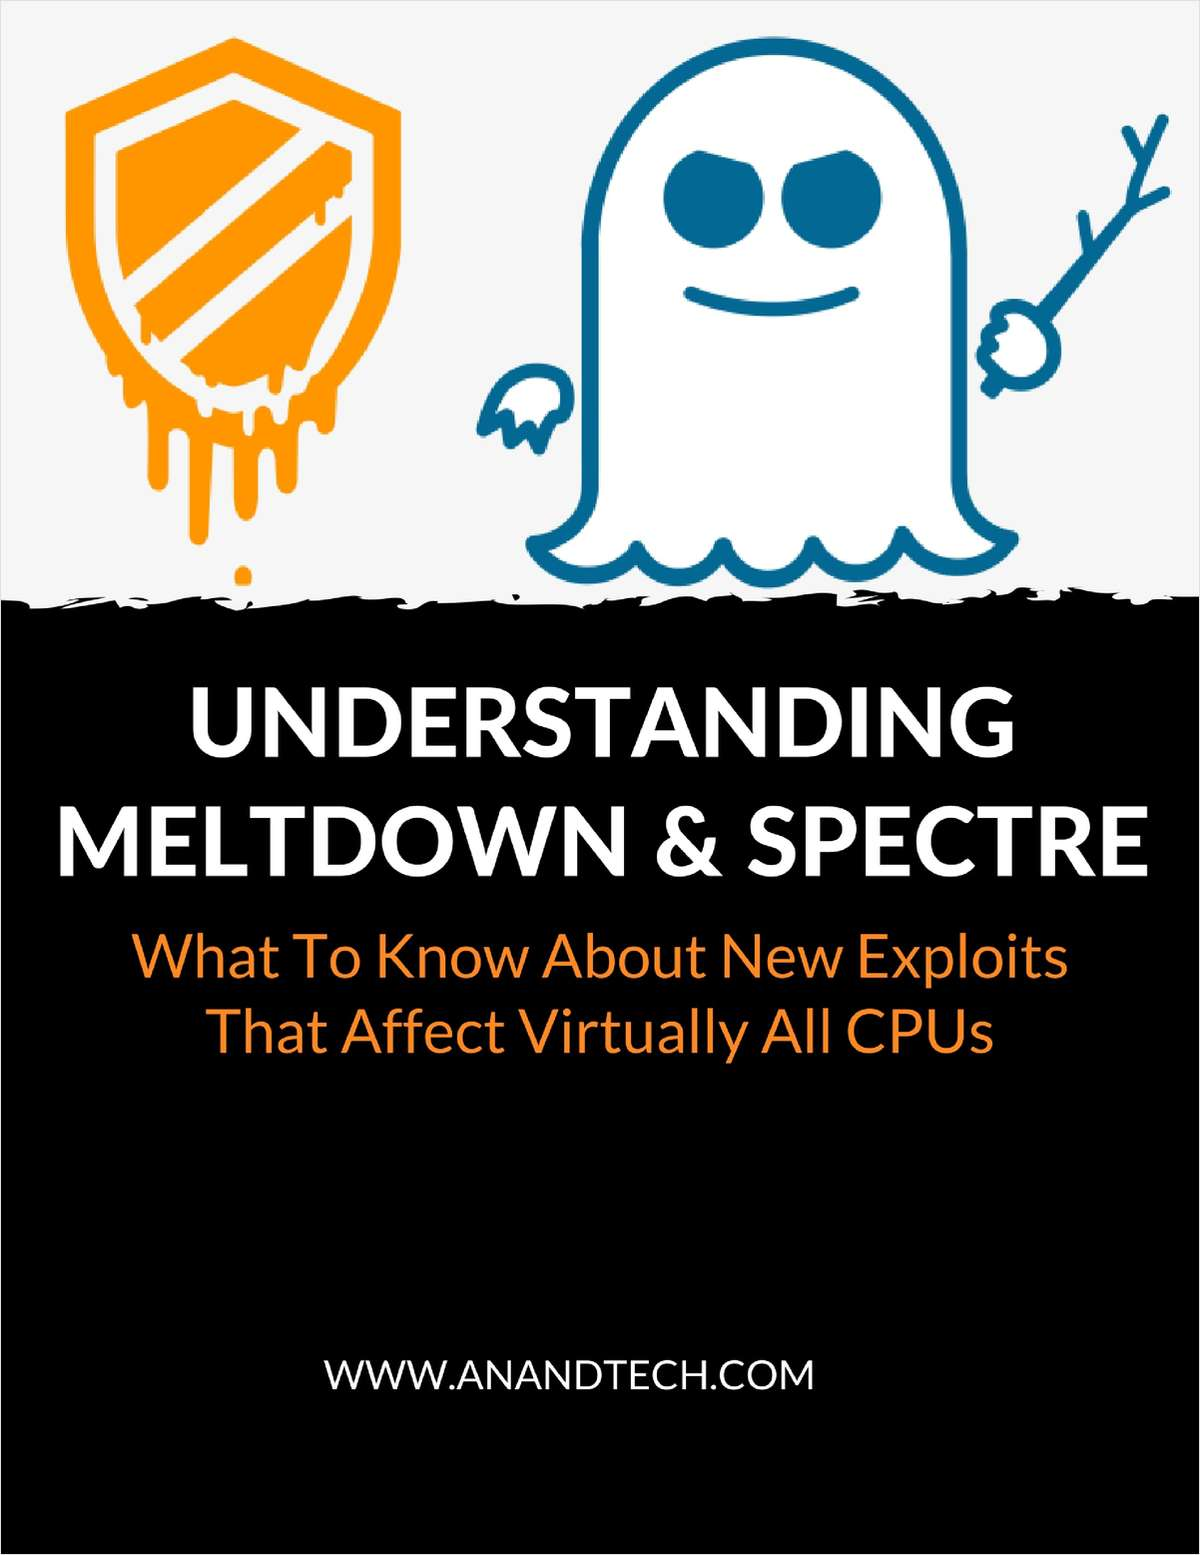 Understanding Meltdown & Spectre - What To Know About New Exploits That Affect Virtually All CPUs